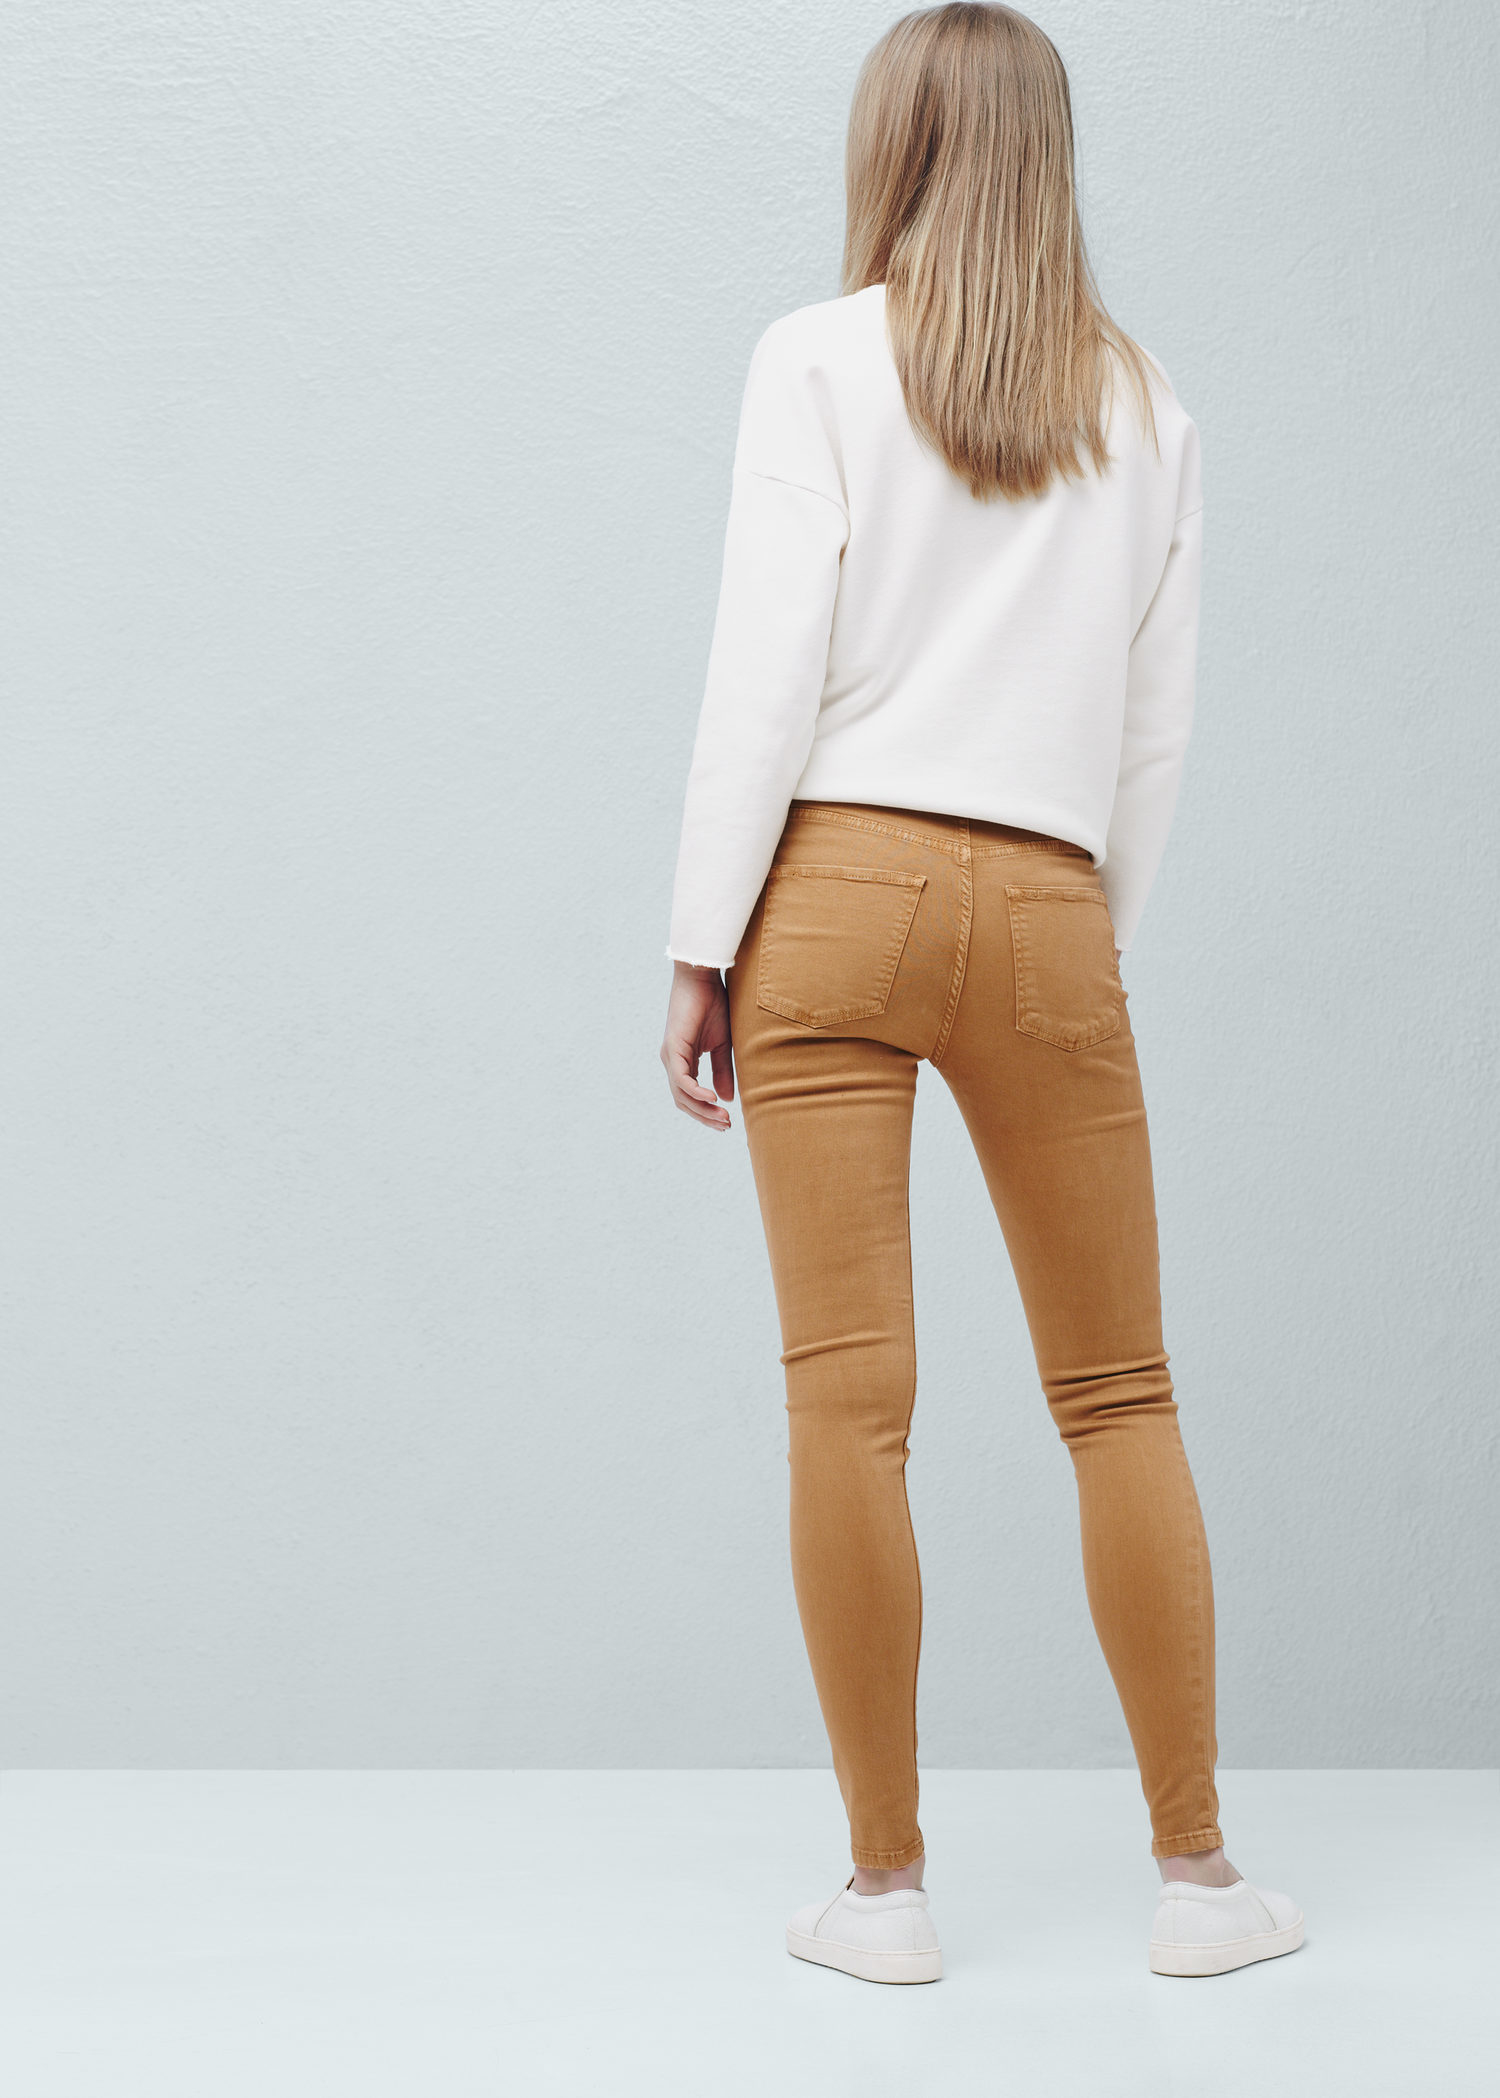 Mango High Waist Skinny Jeans in Brown | Lyst